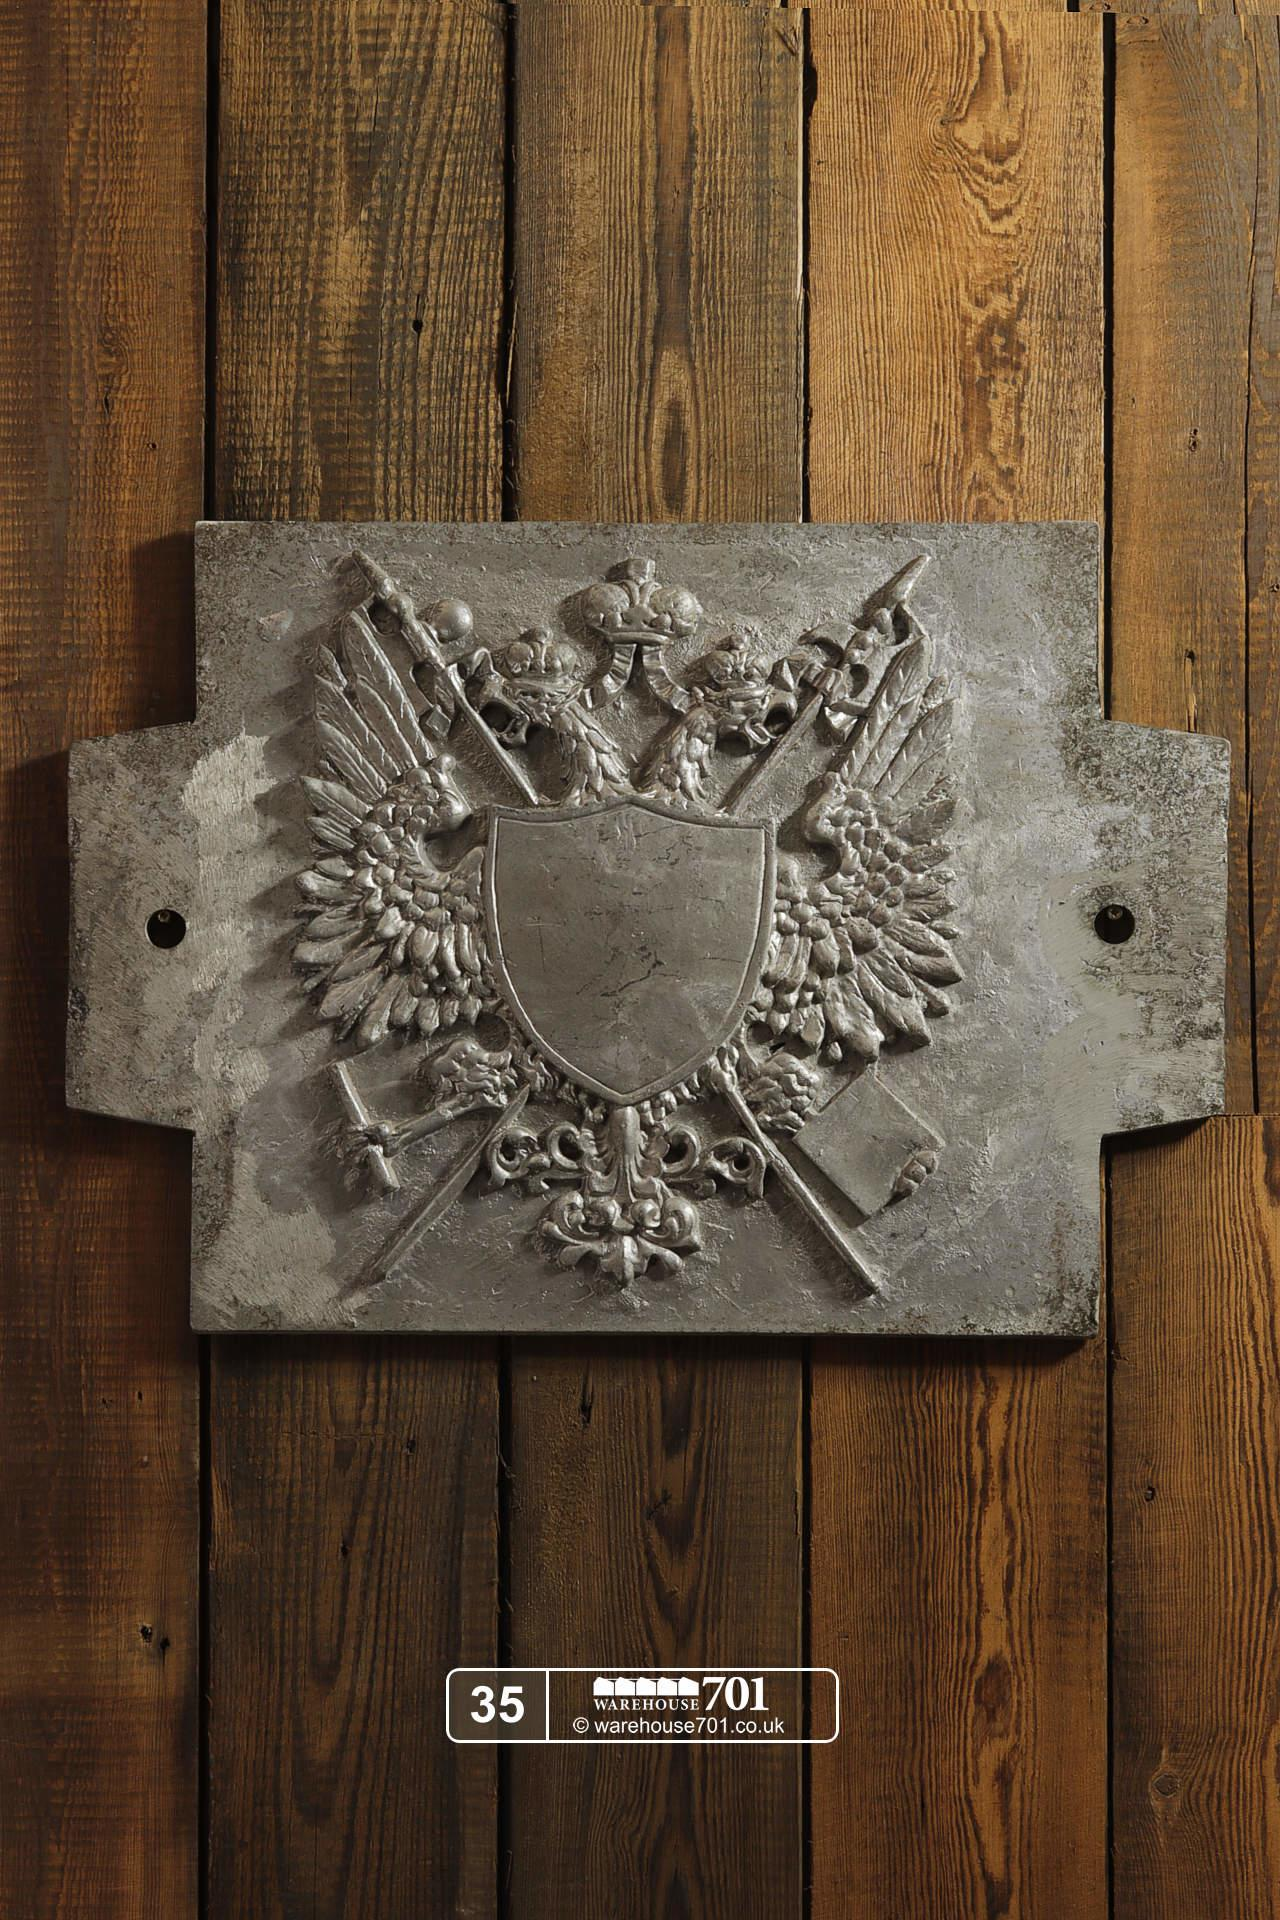 Aluminium Foundry Castings of Heraldic Crests (No's 35, 36, 37) for Shop, Retail and Home Display #3